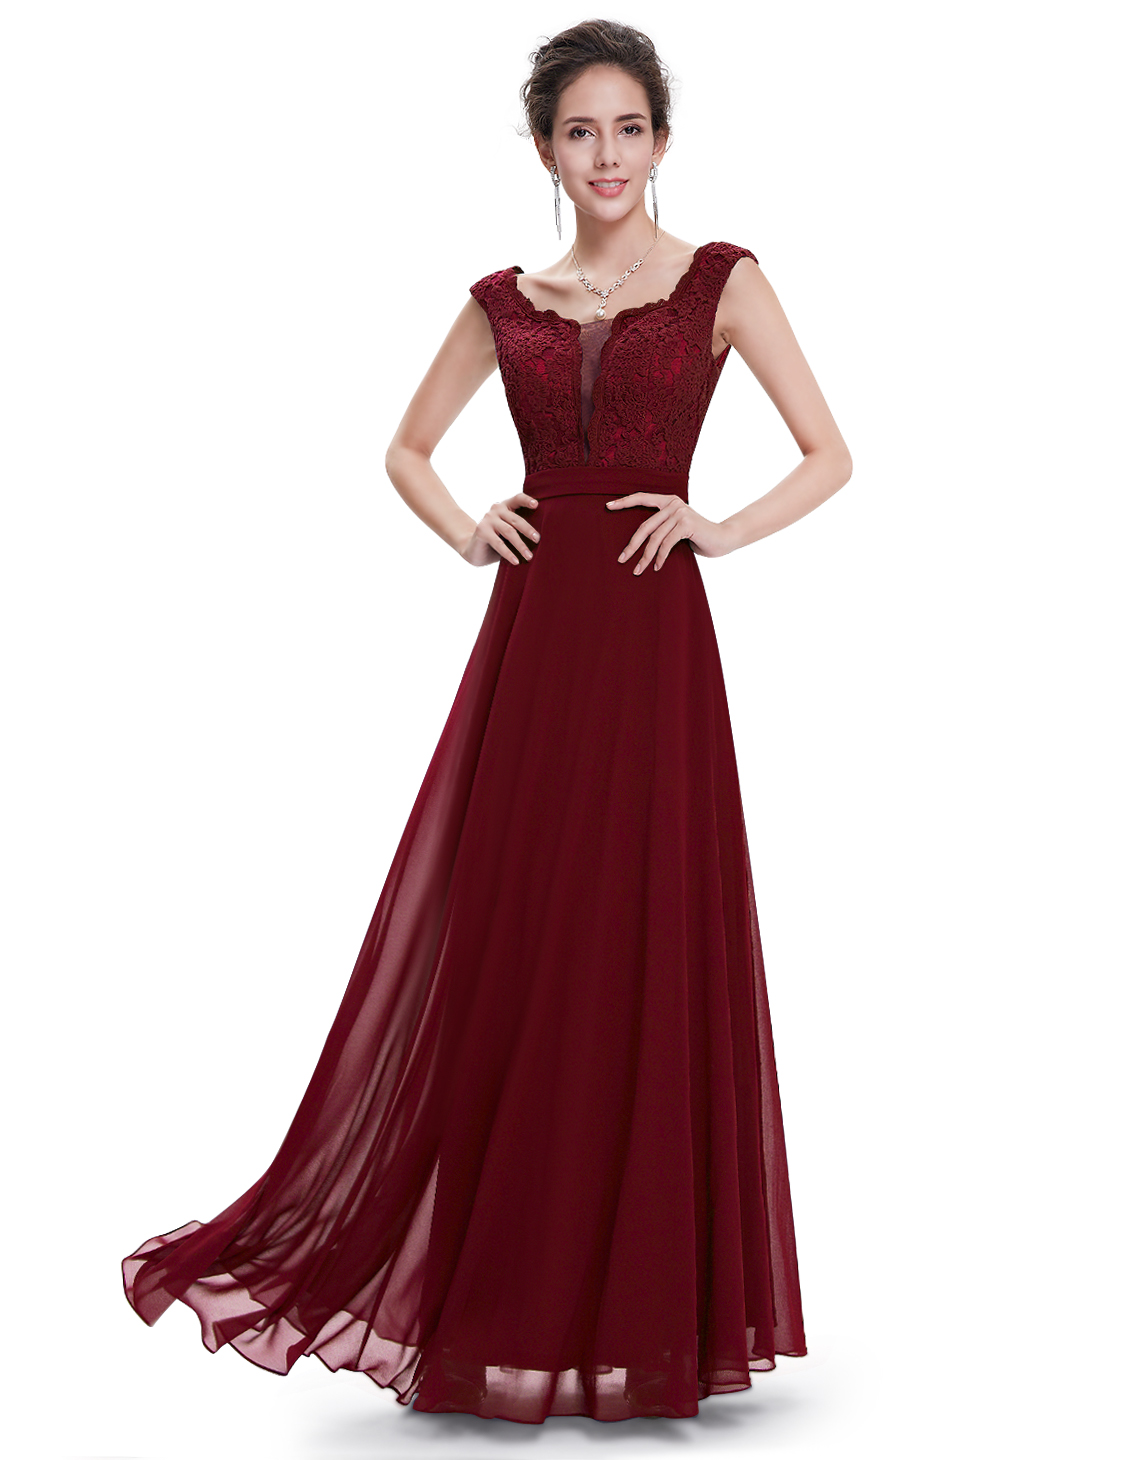 Long v neck chiffon bridesmaid dresses formal party cocktail 08628 long v neck chiffon bridesmaid dresses formal party ombrellifo Gallery